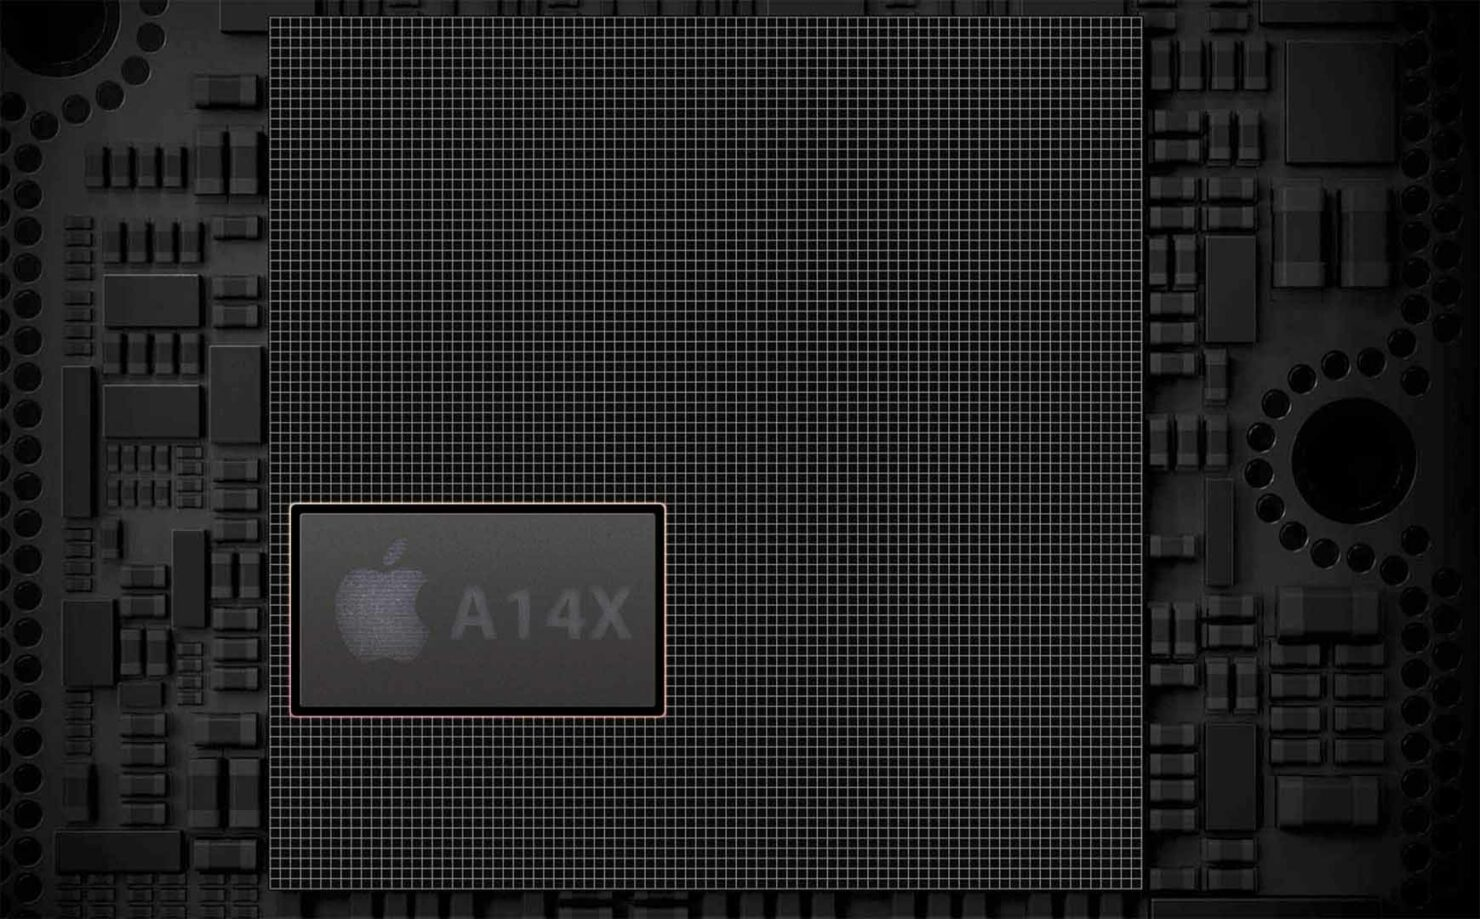 Apple Started A14X Bionic Mass Production on the 5nm Node for New iPad Pro Models Days Ago, According to Latest Info